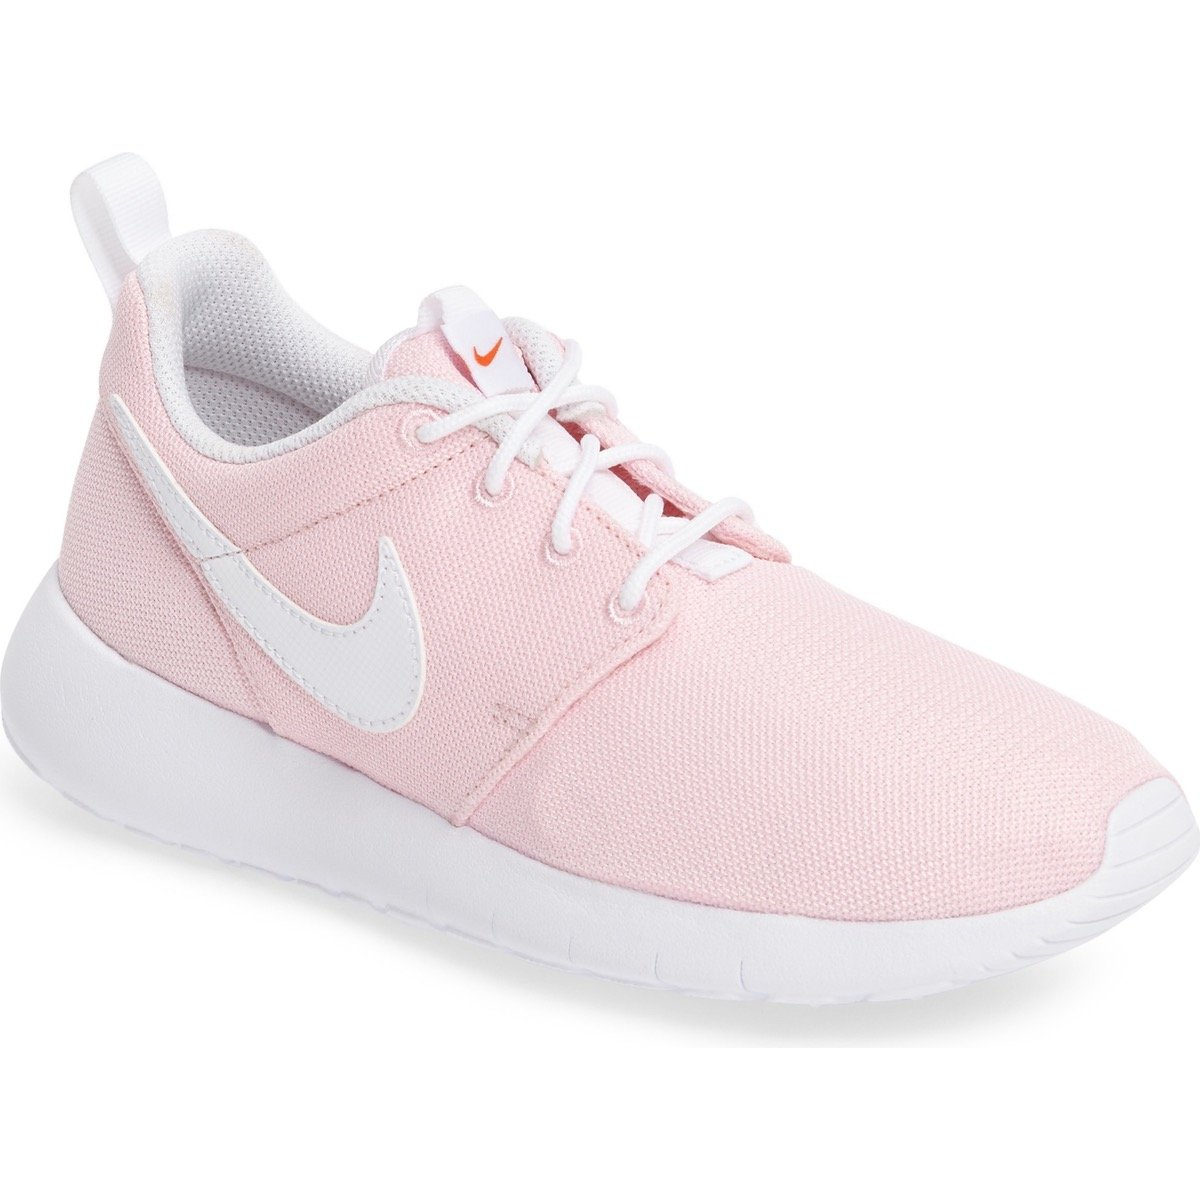 857ead62b6d2 Amazon.com  Nike Big Kids Girls Roshe One Running Shoes  Shoes